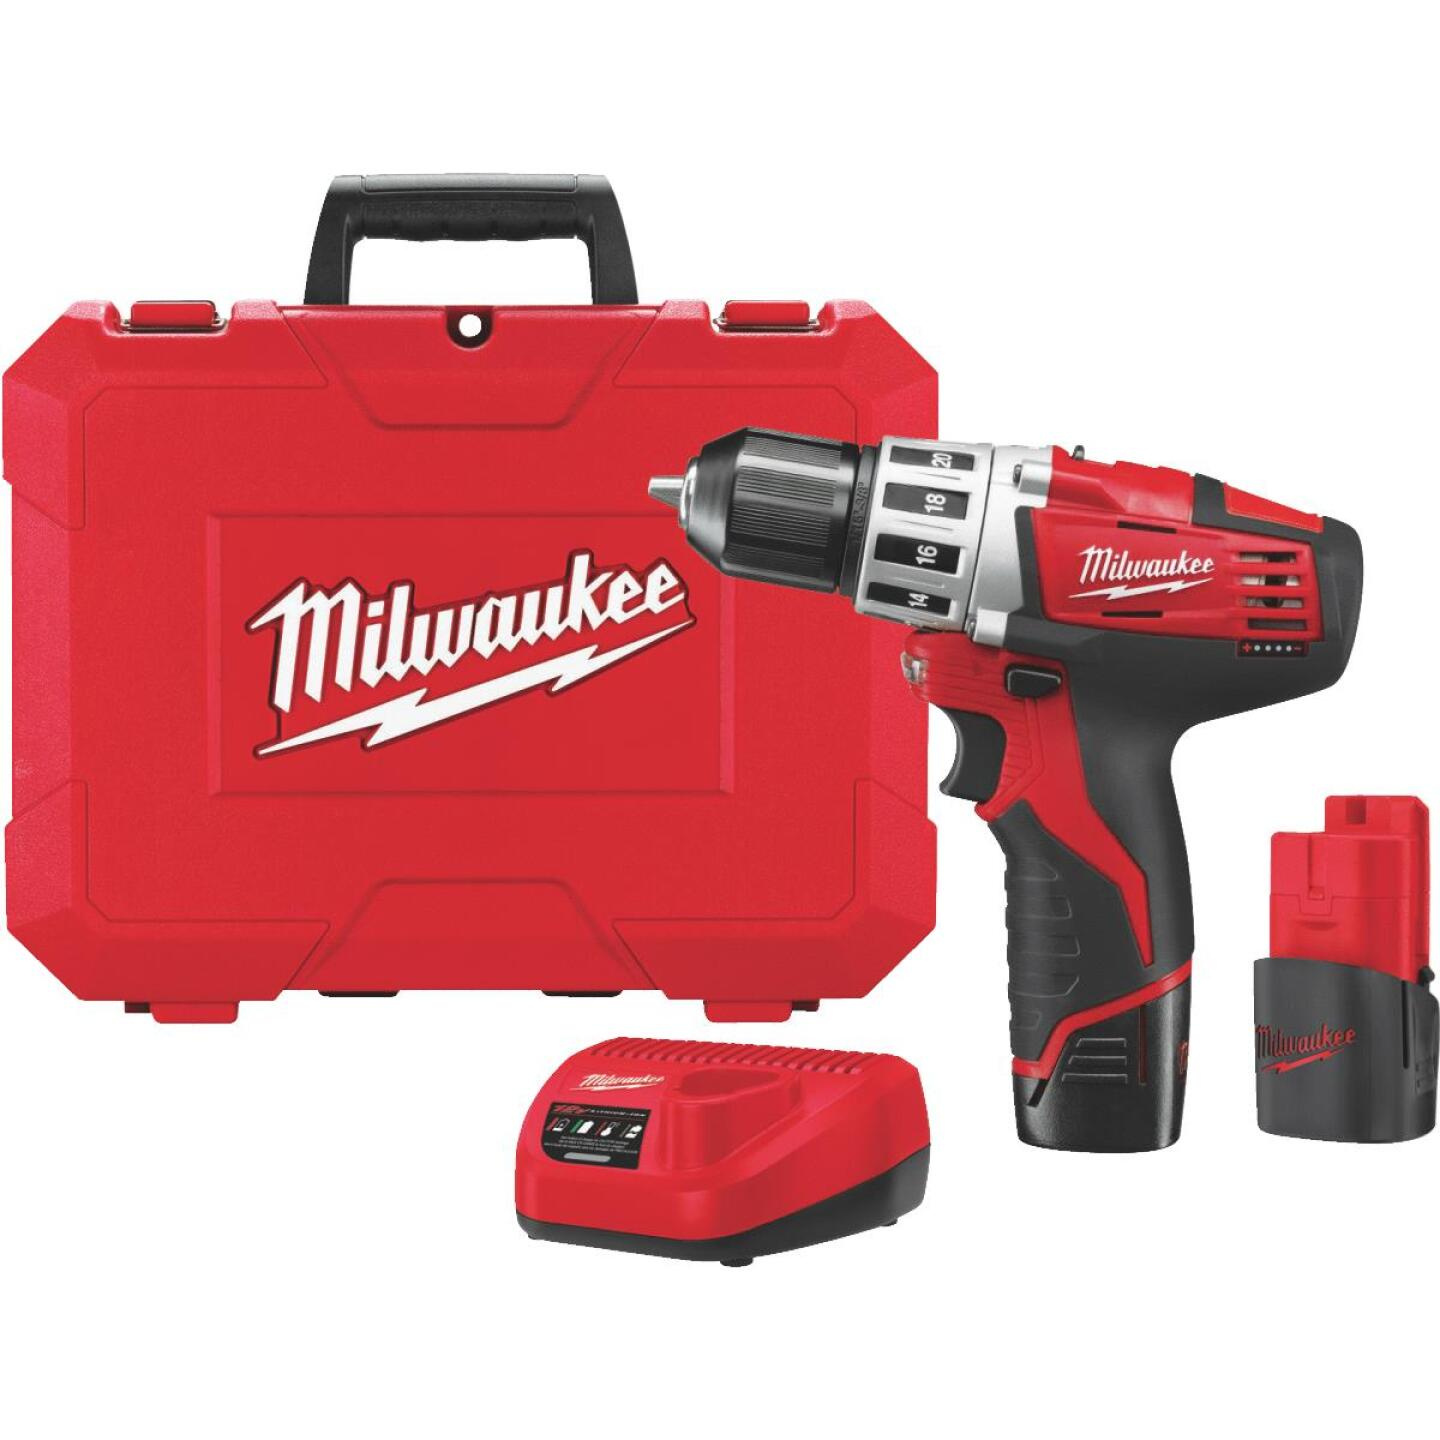 Milwaukee M12 12 Volt Lithium-Ion 3/8 In. Cordless Drill Kit Image 2